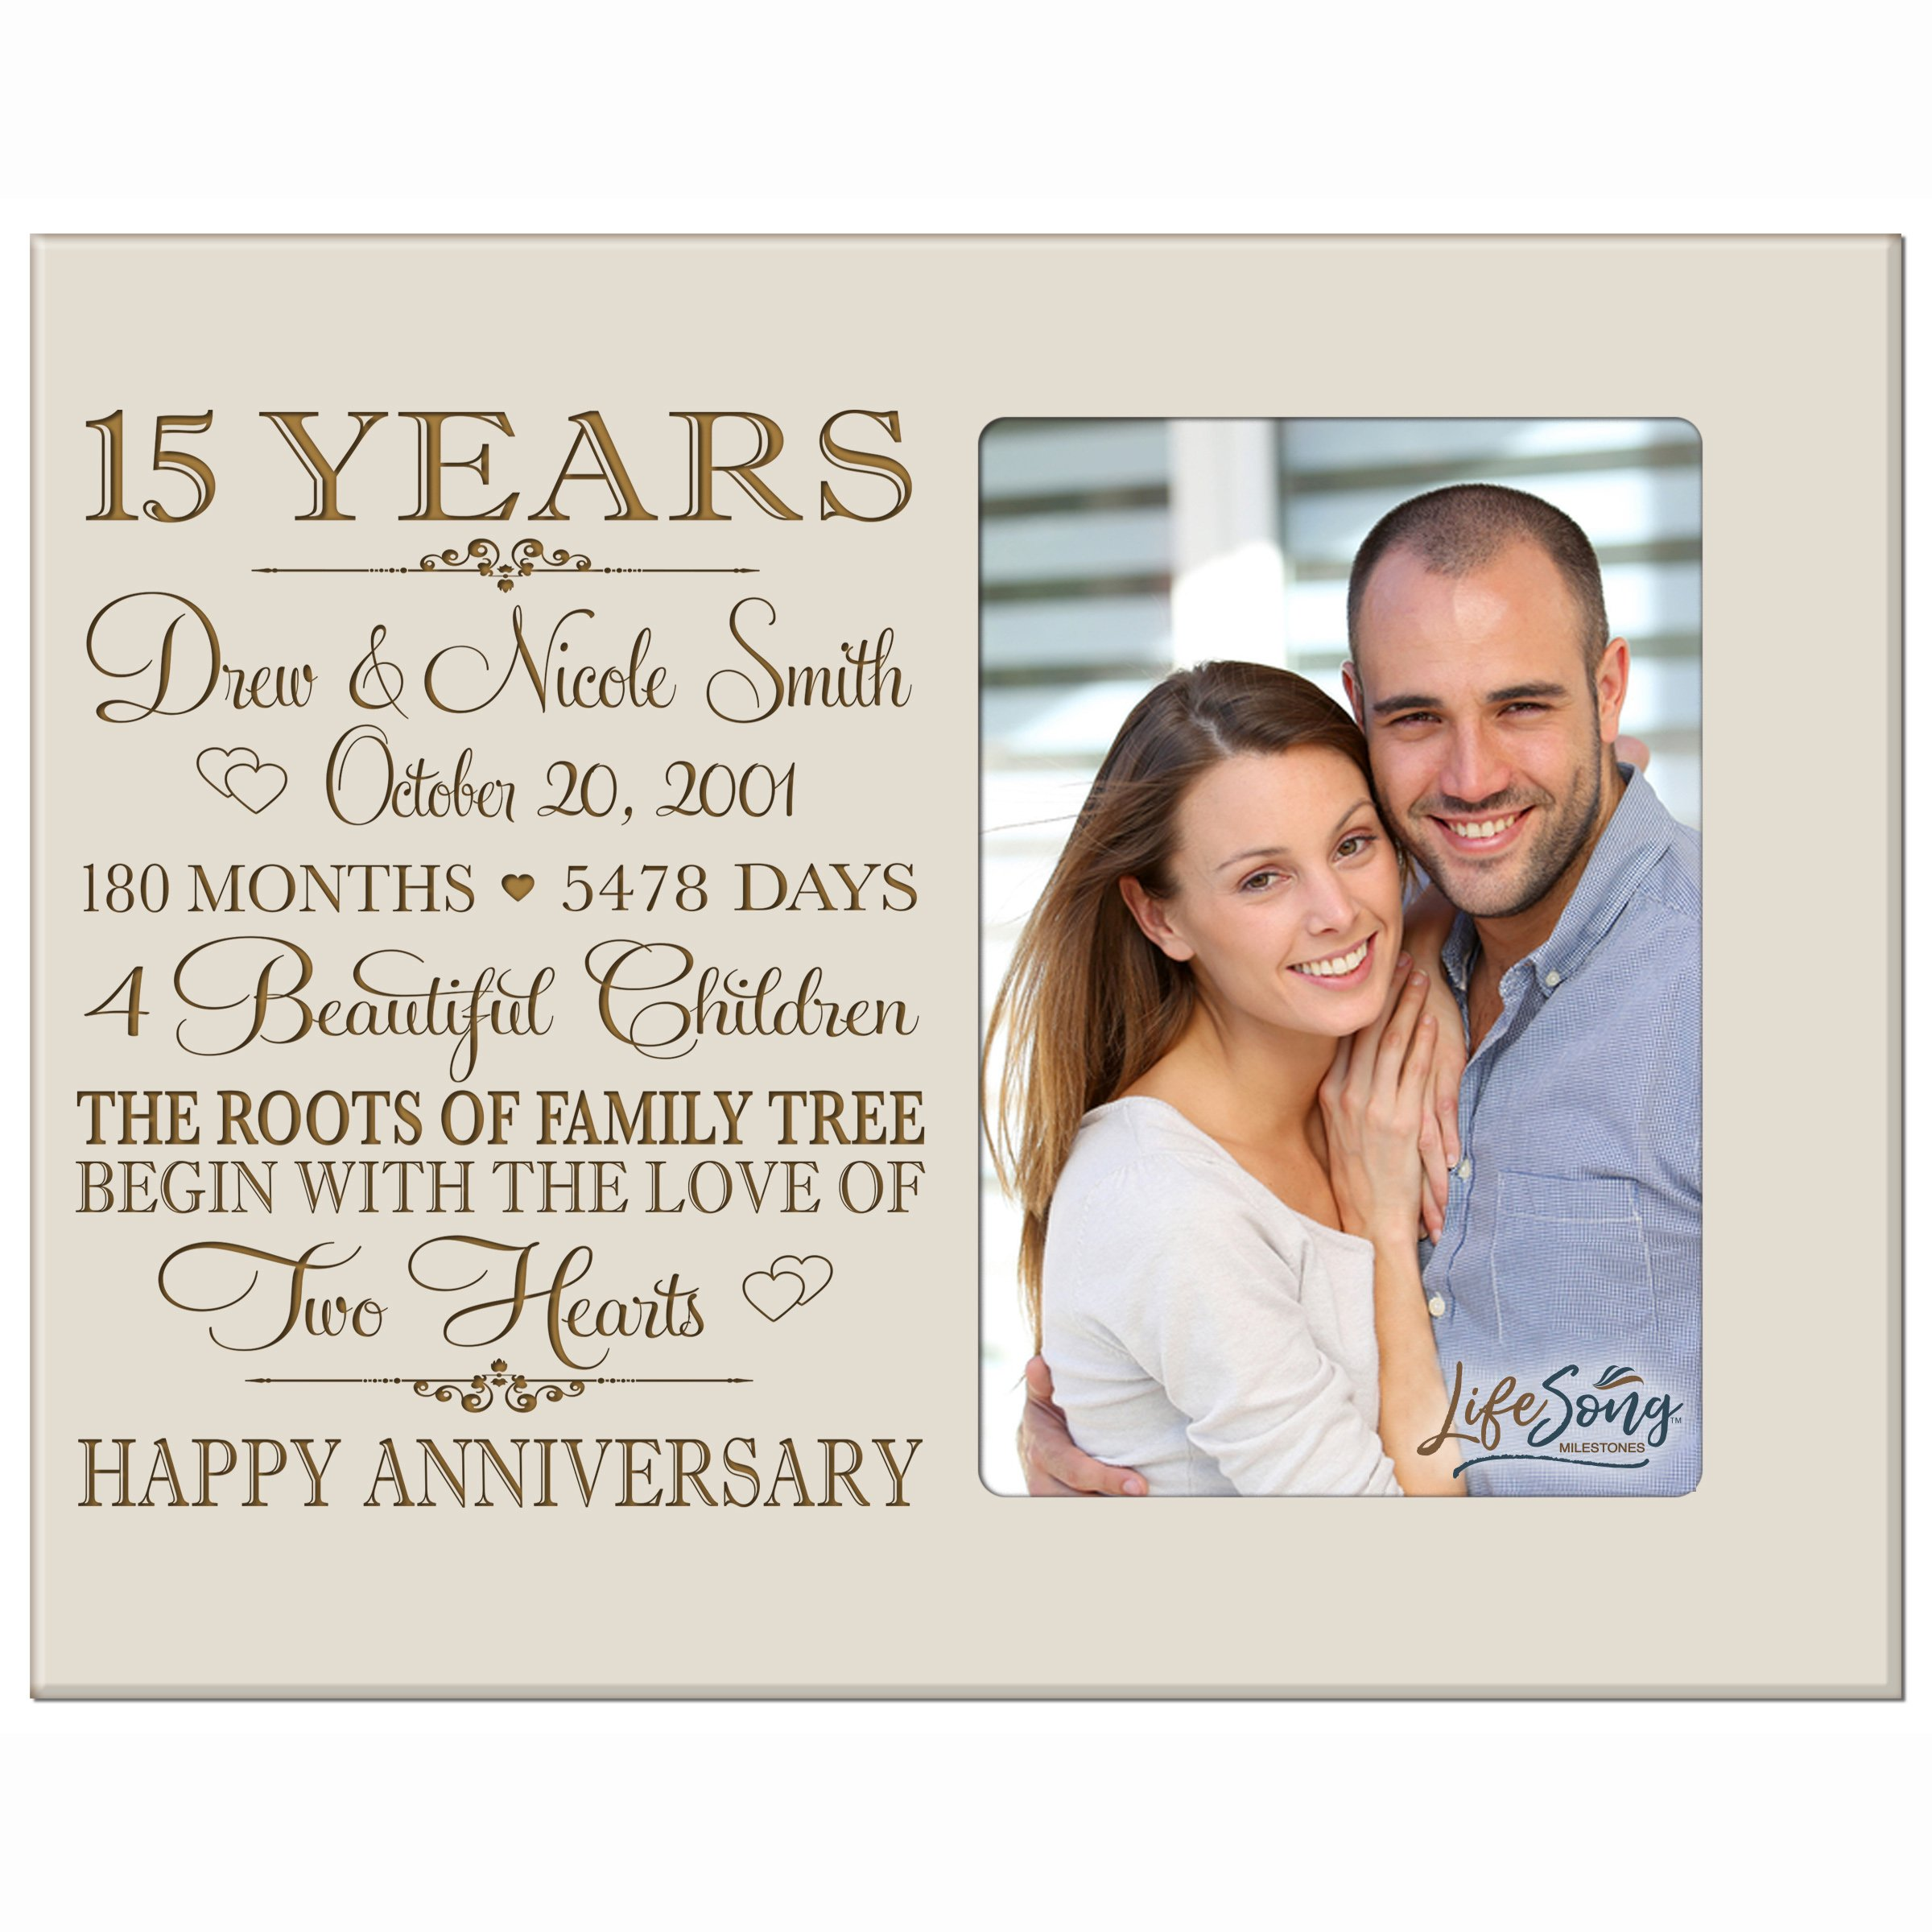 Personalized Fifteen year anniversary gift for her him couple Custom Engraved wedding gift for husband wife girlfriend boyfriend photo frame holds 4x6 photo by LifeSong Milestones (ivory)